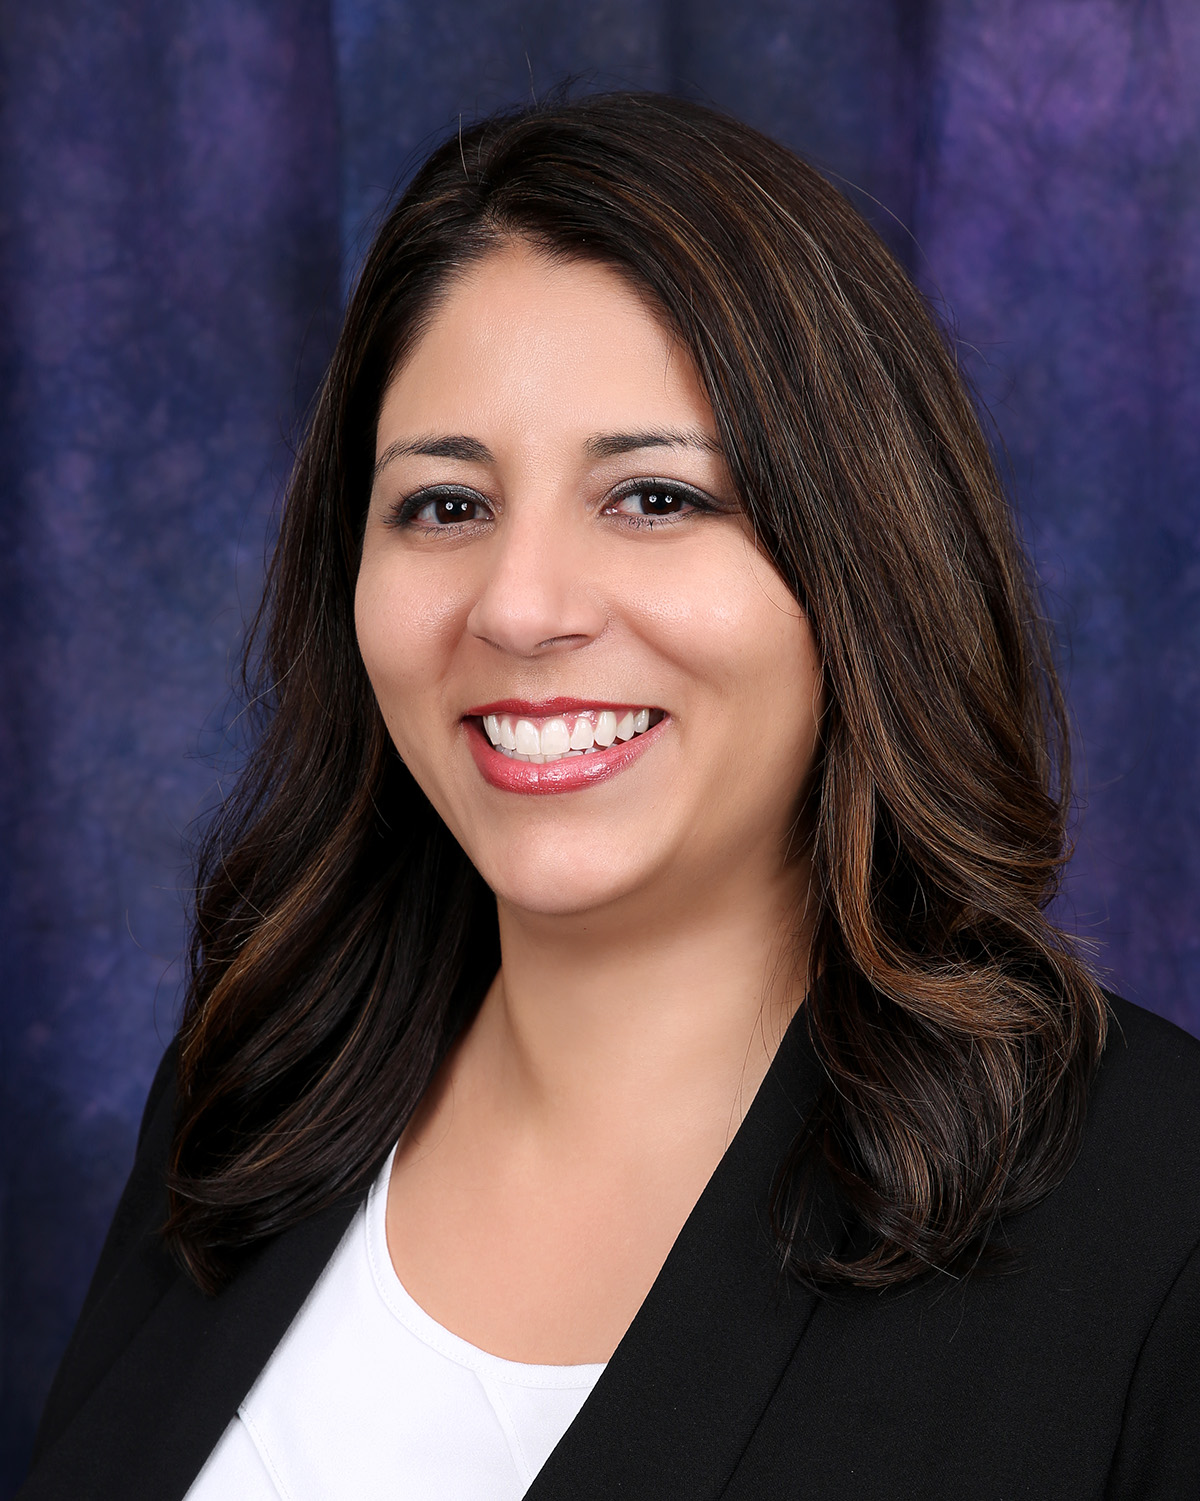 Rebecca M. Villarreal, APR, Director of Communications for New Braunfels ISD